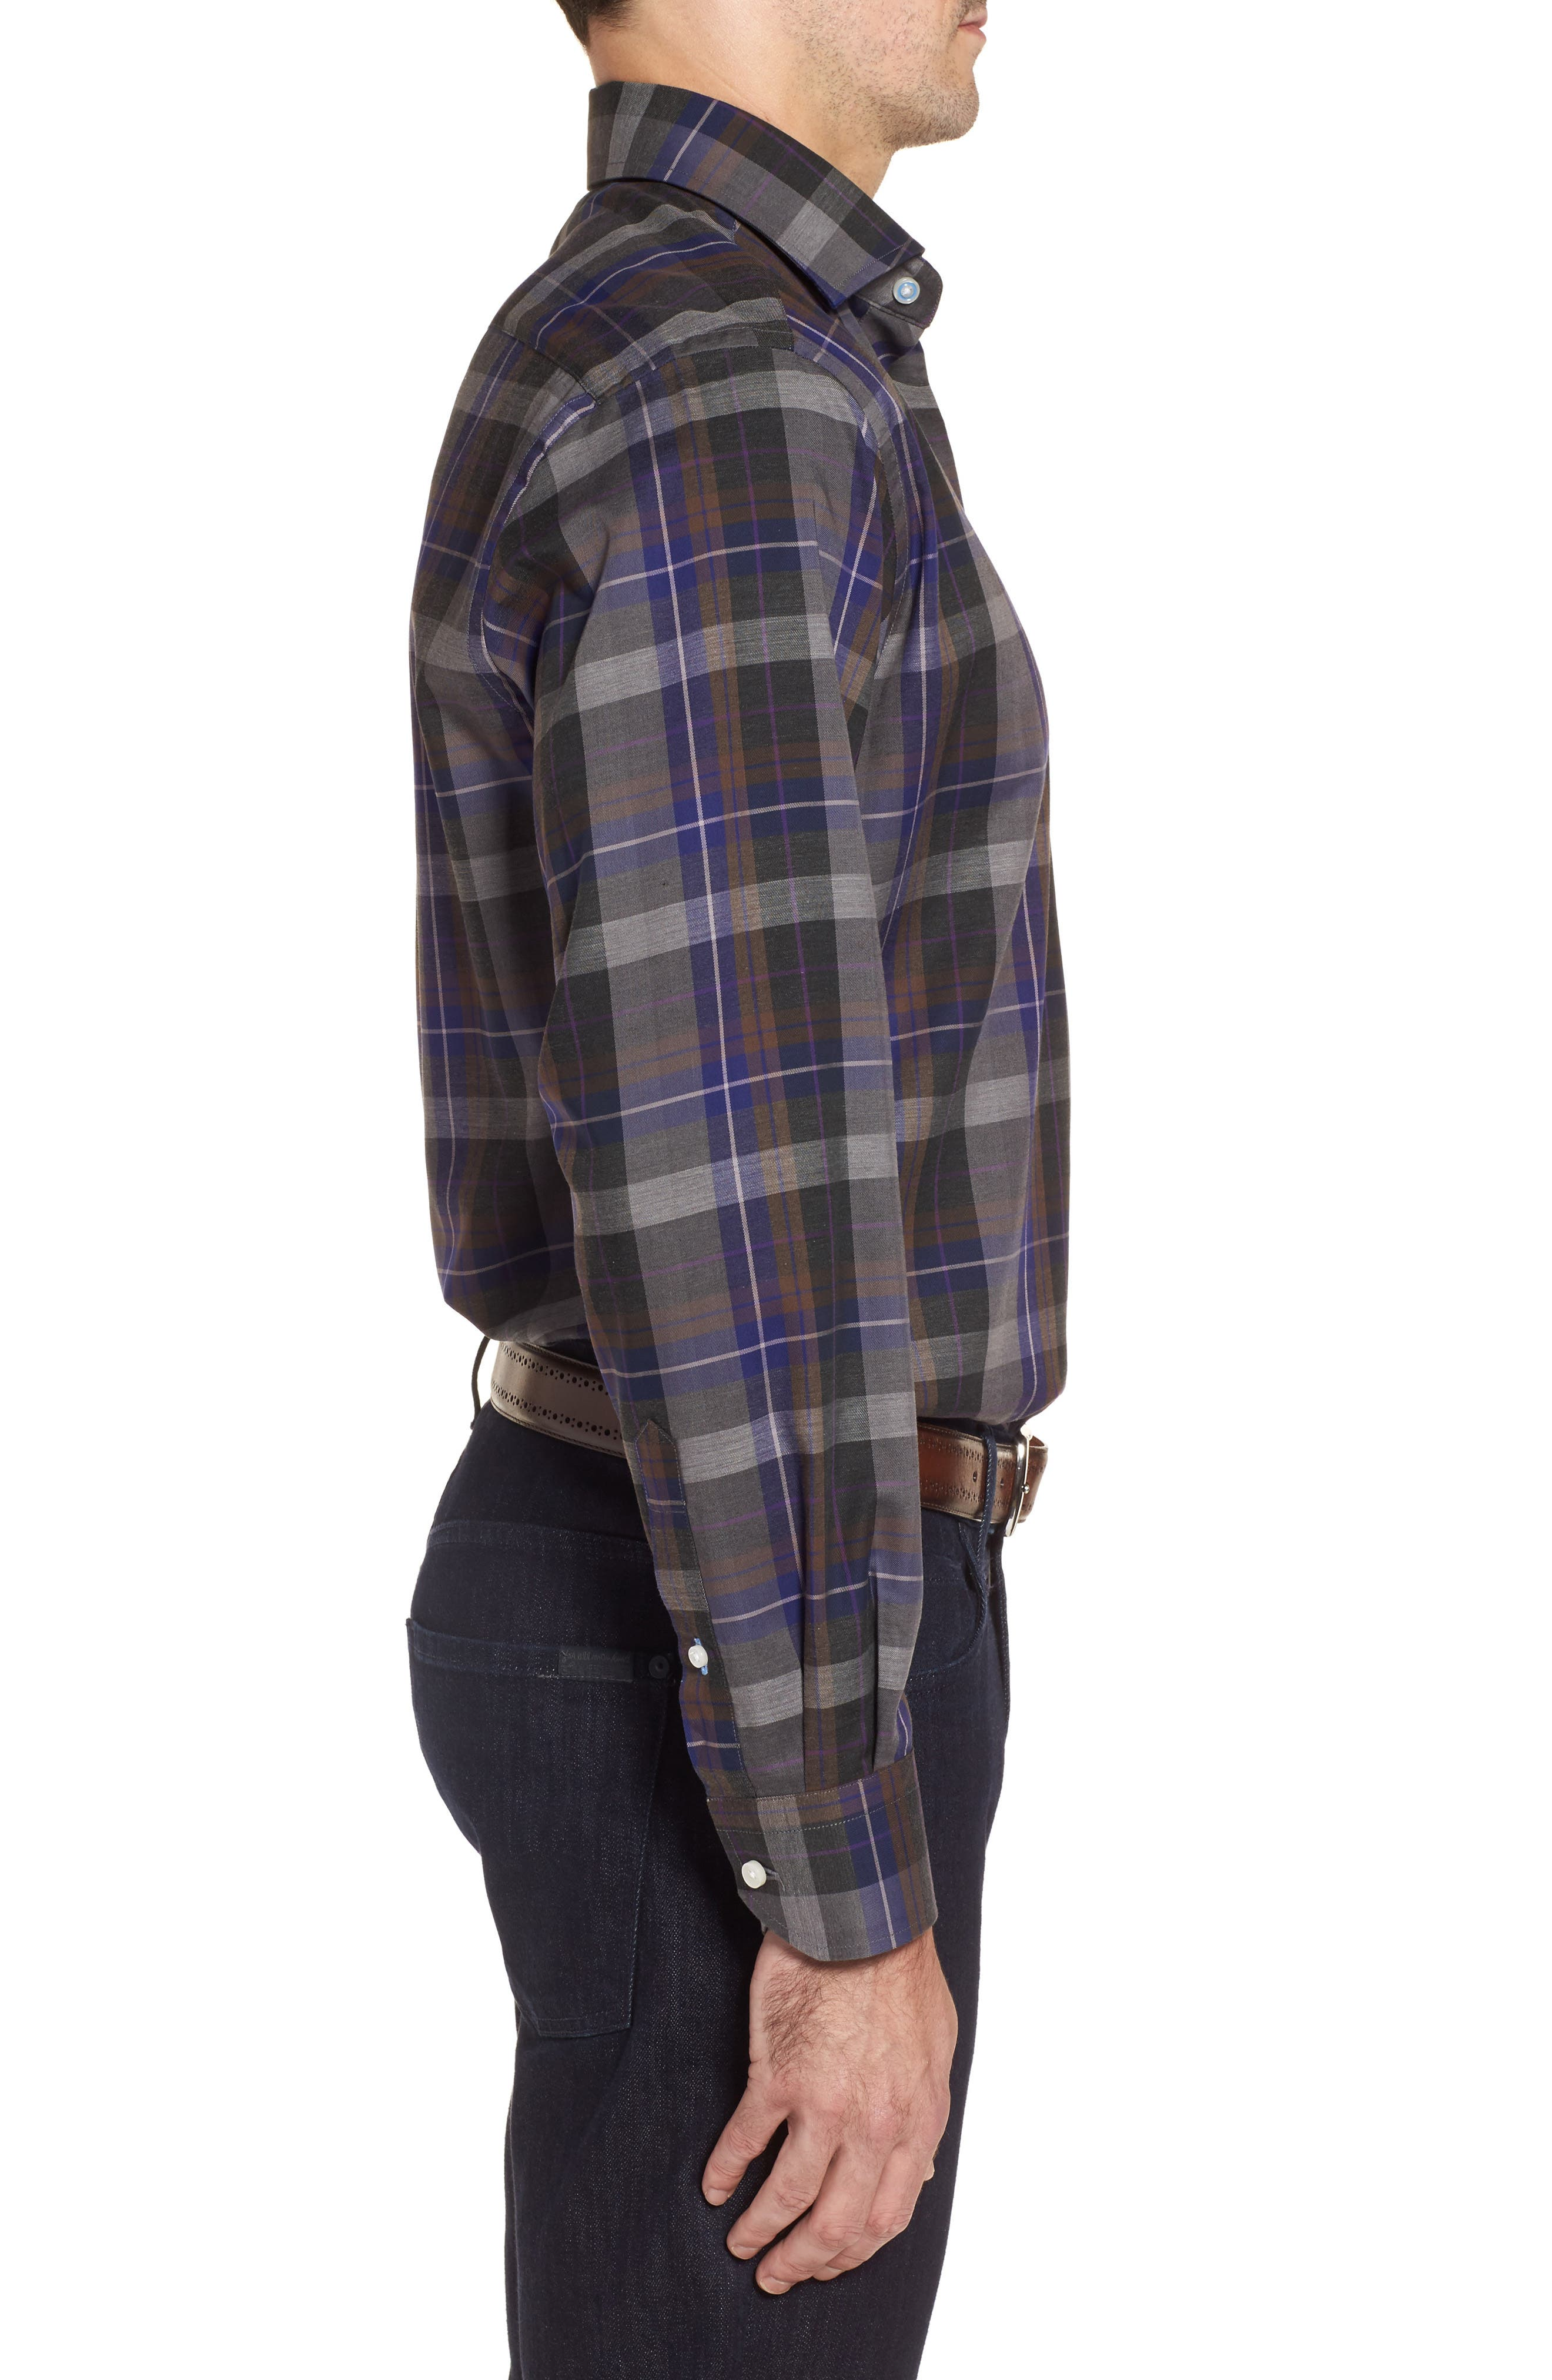 Cullen Plaid Twill Sport Shirt,                             Alternate thumbnail 3, color,                             Blue